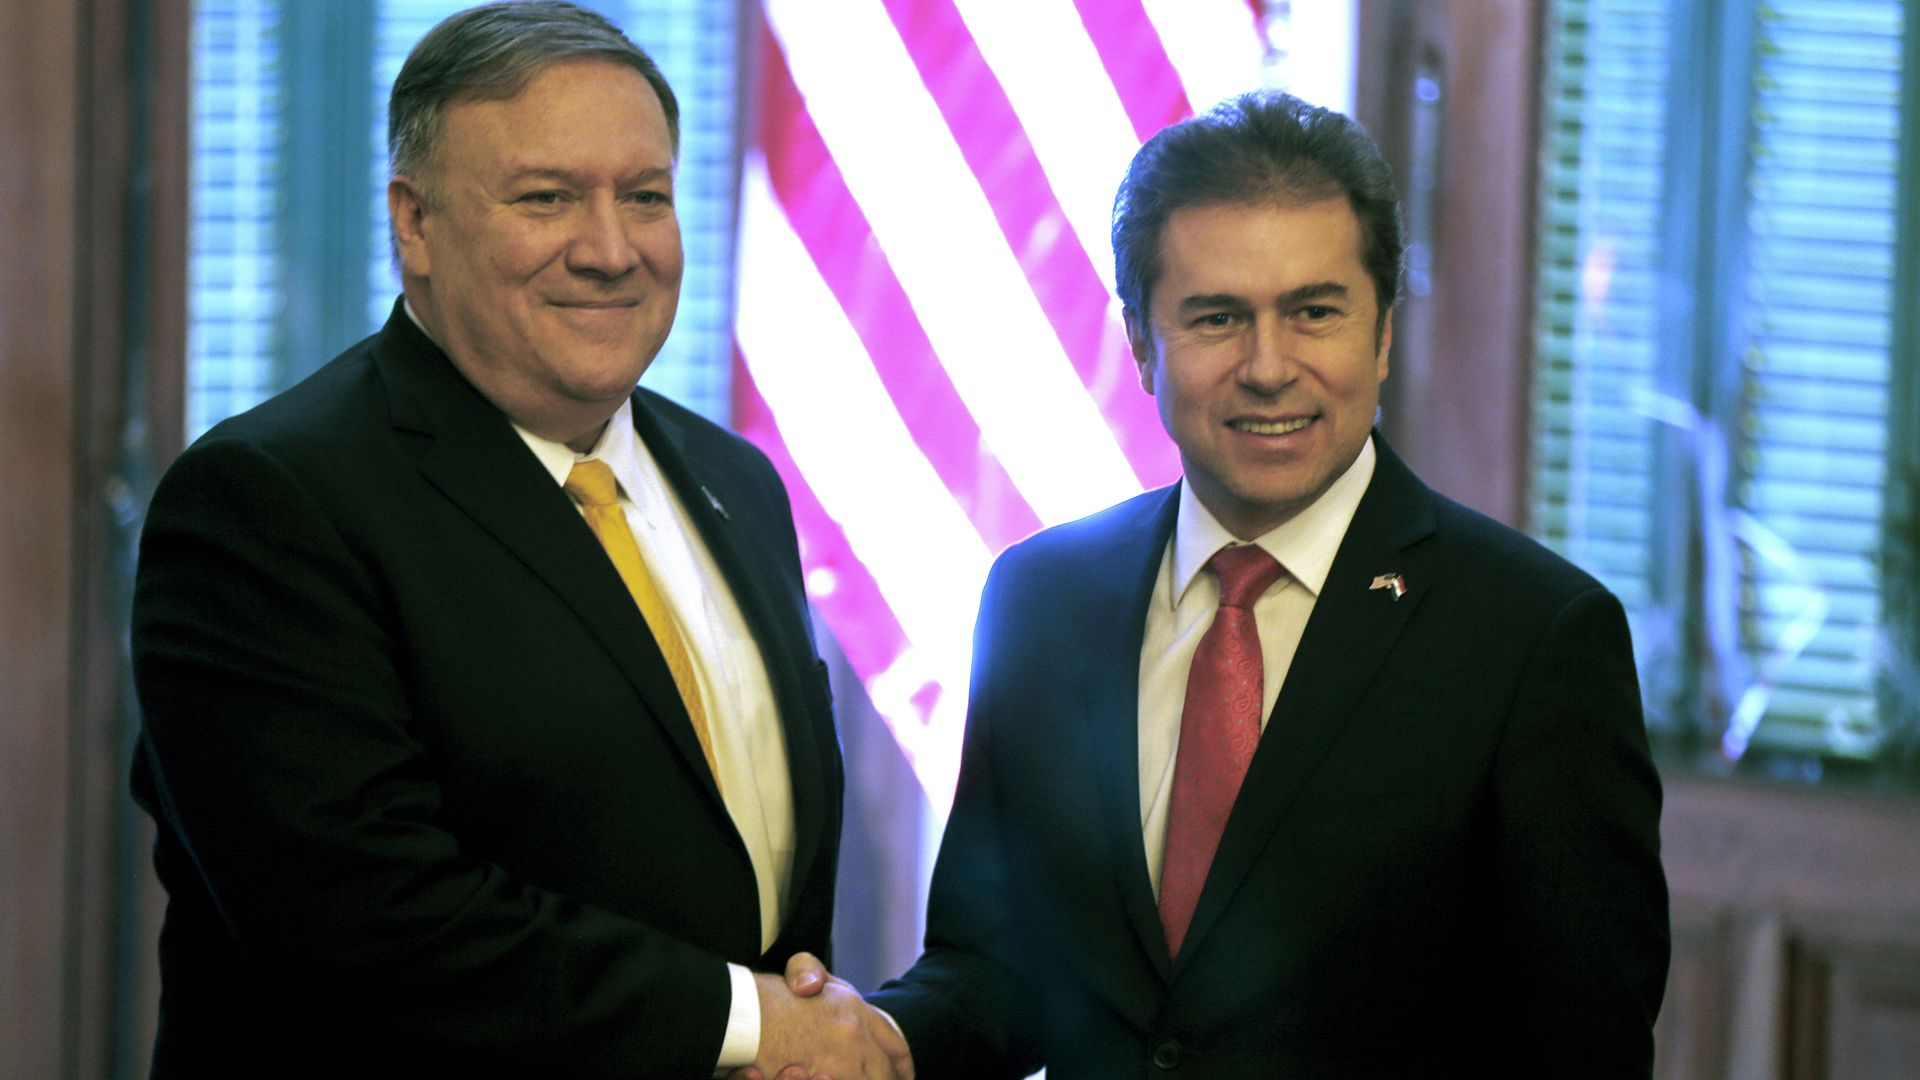 Pompeo's Paraguay visit signals heightened regional stakes for U.S.